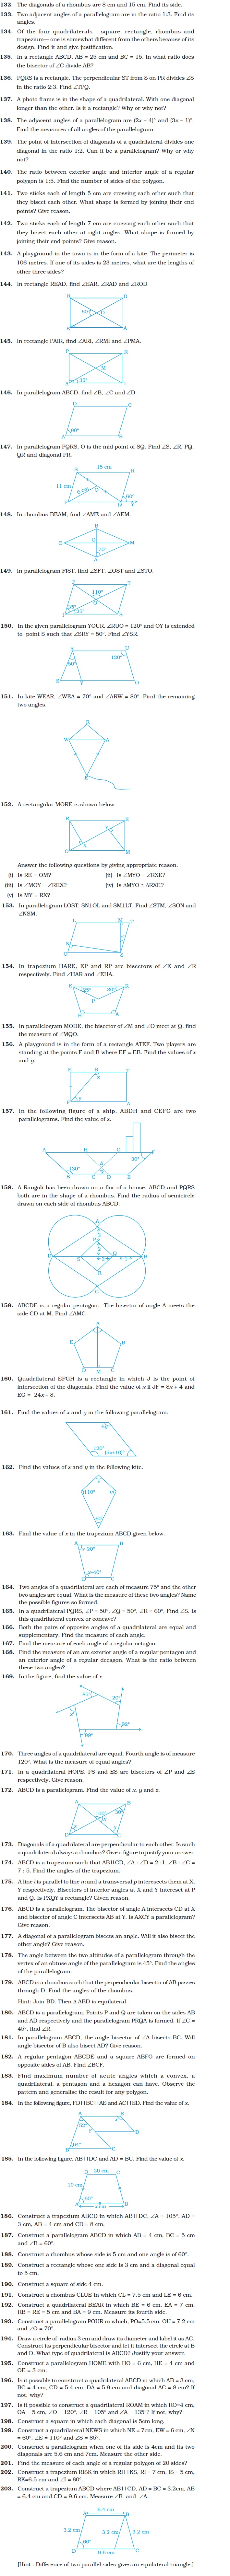 class 8 important questions for maths understanding short answer type questions understanding quadrilaterals and practical geometry